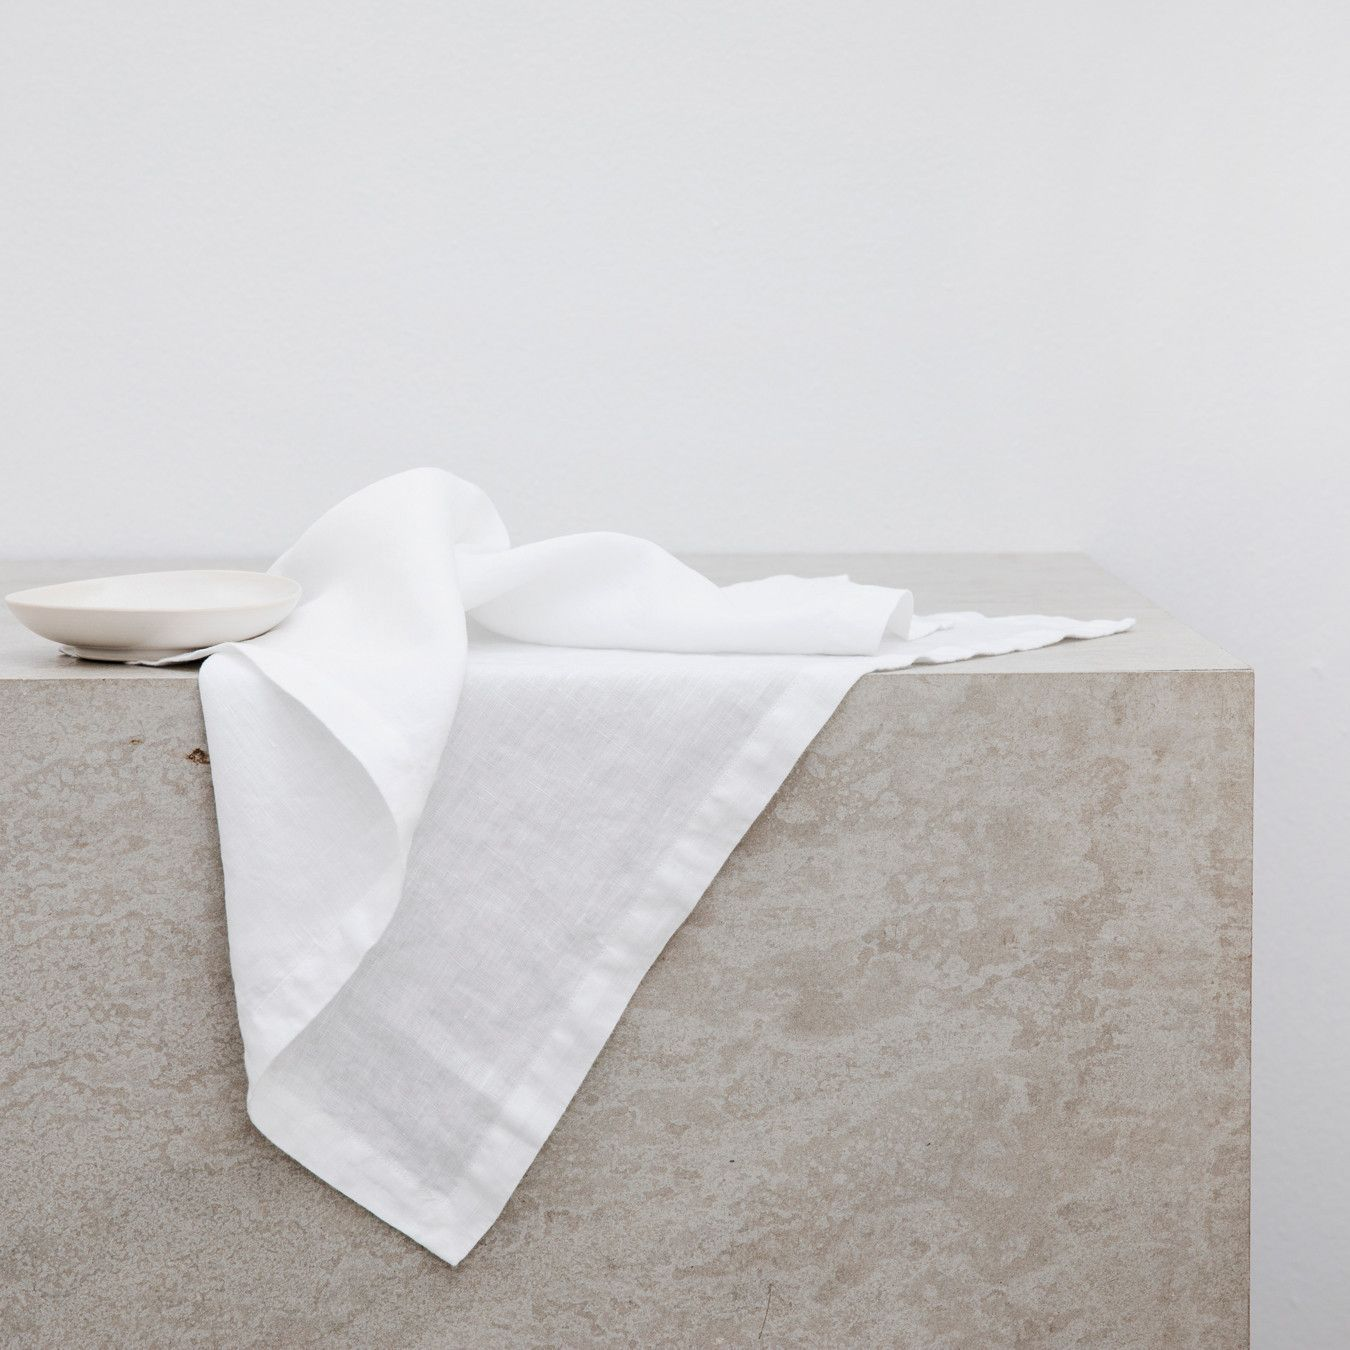 Linen Table Napkins White Linen Napkins Napkins Set Napkins